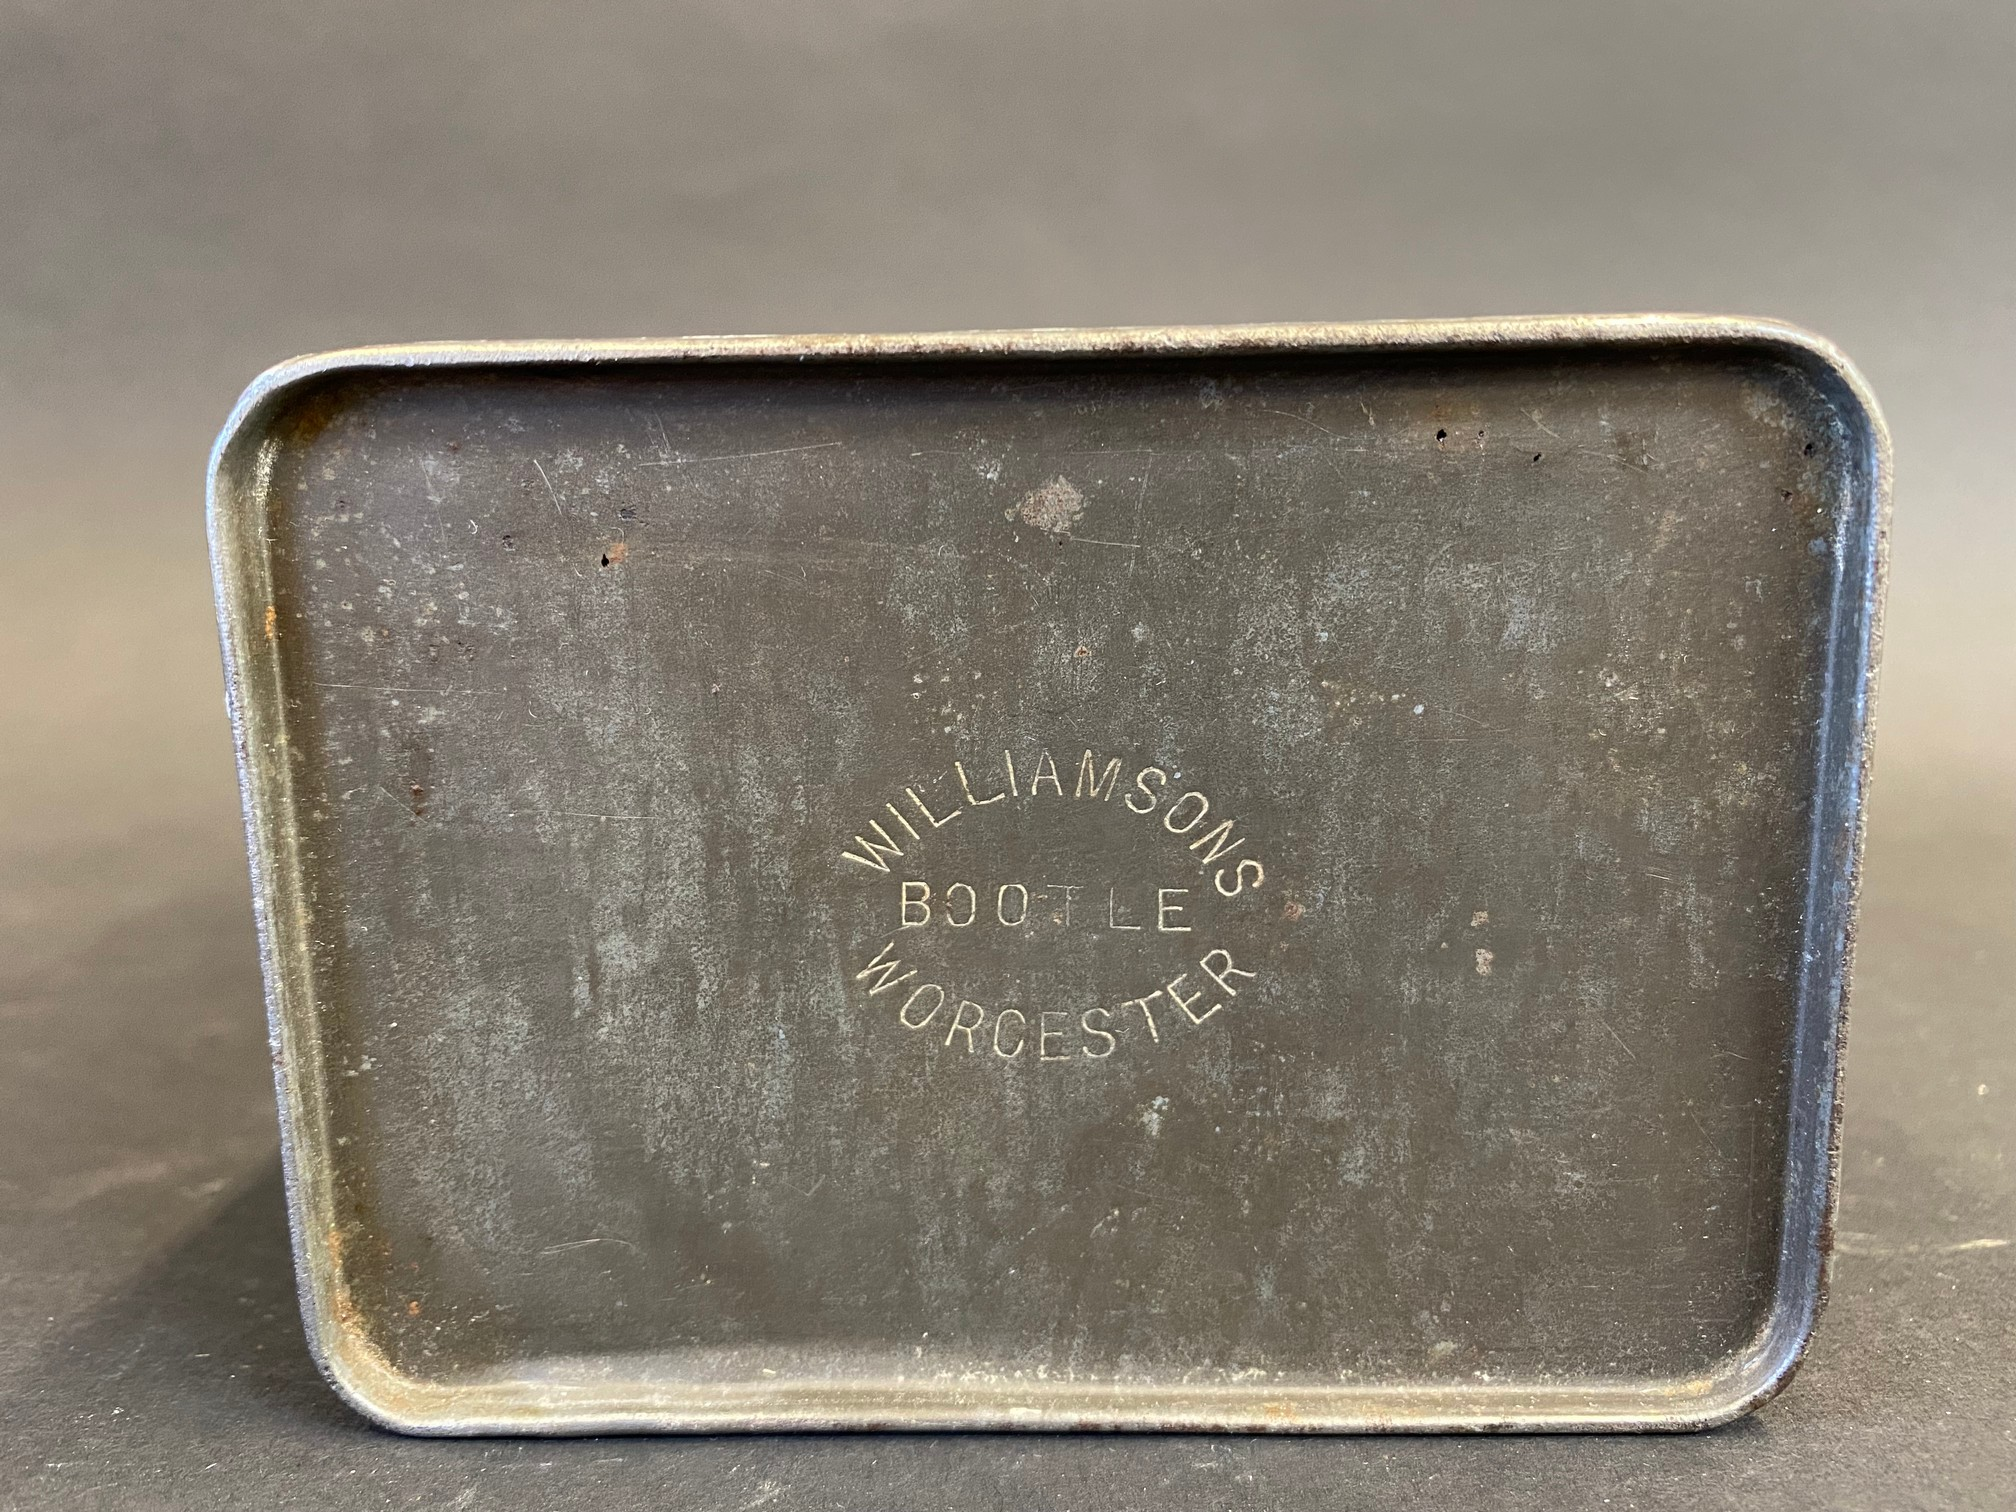 An early Wakefield Castrol Motor Oil quart oil can, early light green version in good condition, - Image 4 of 4